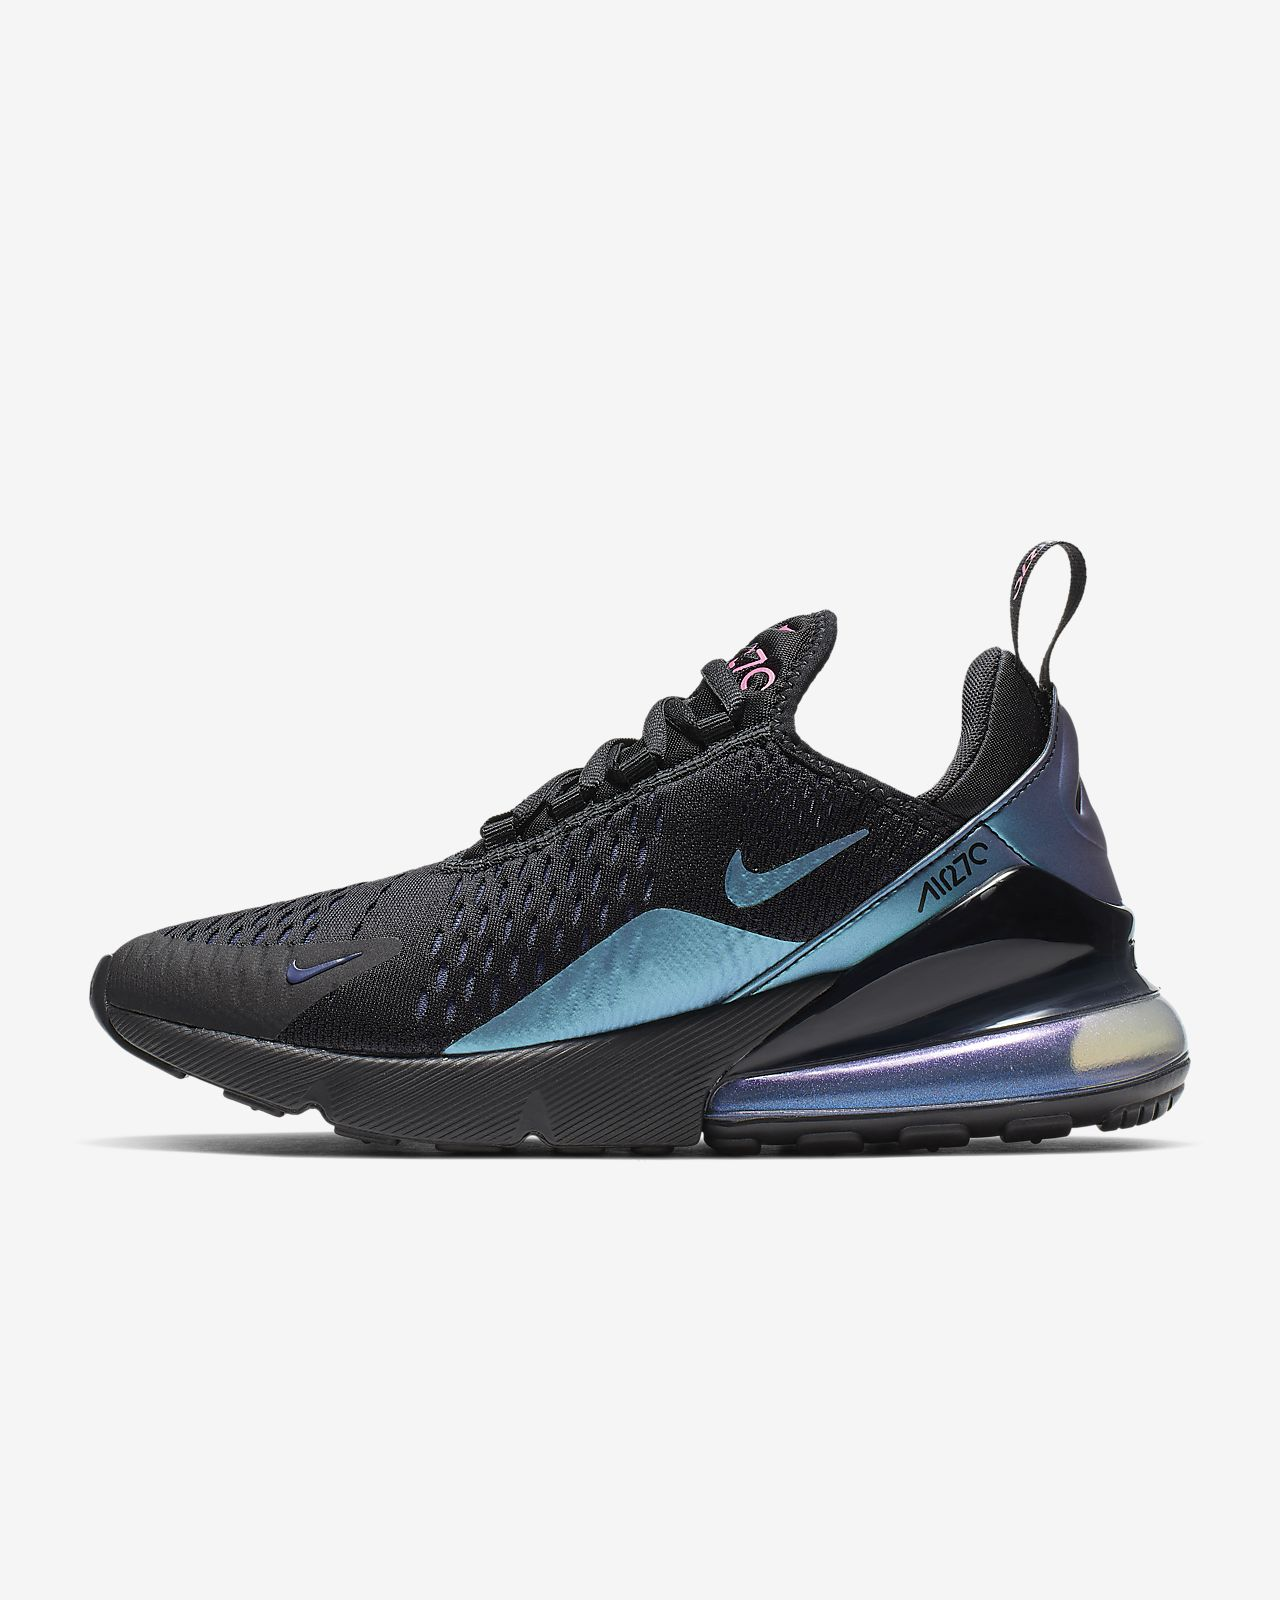 147dee4b9a7b Nike Air Max 270 Women s Shoe. Nike.com GB